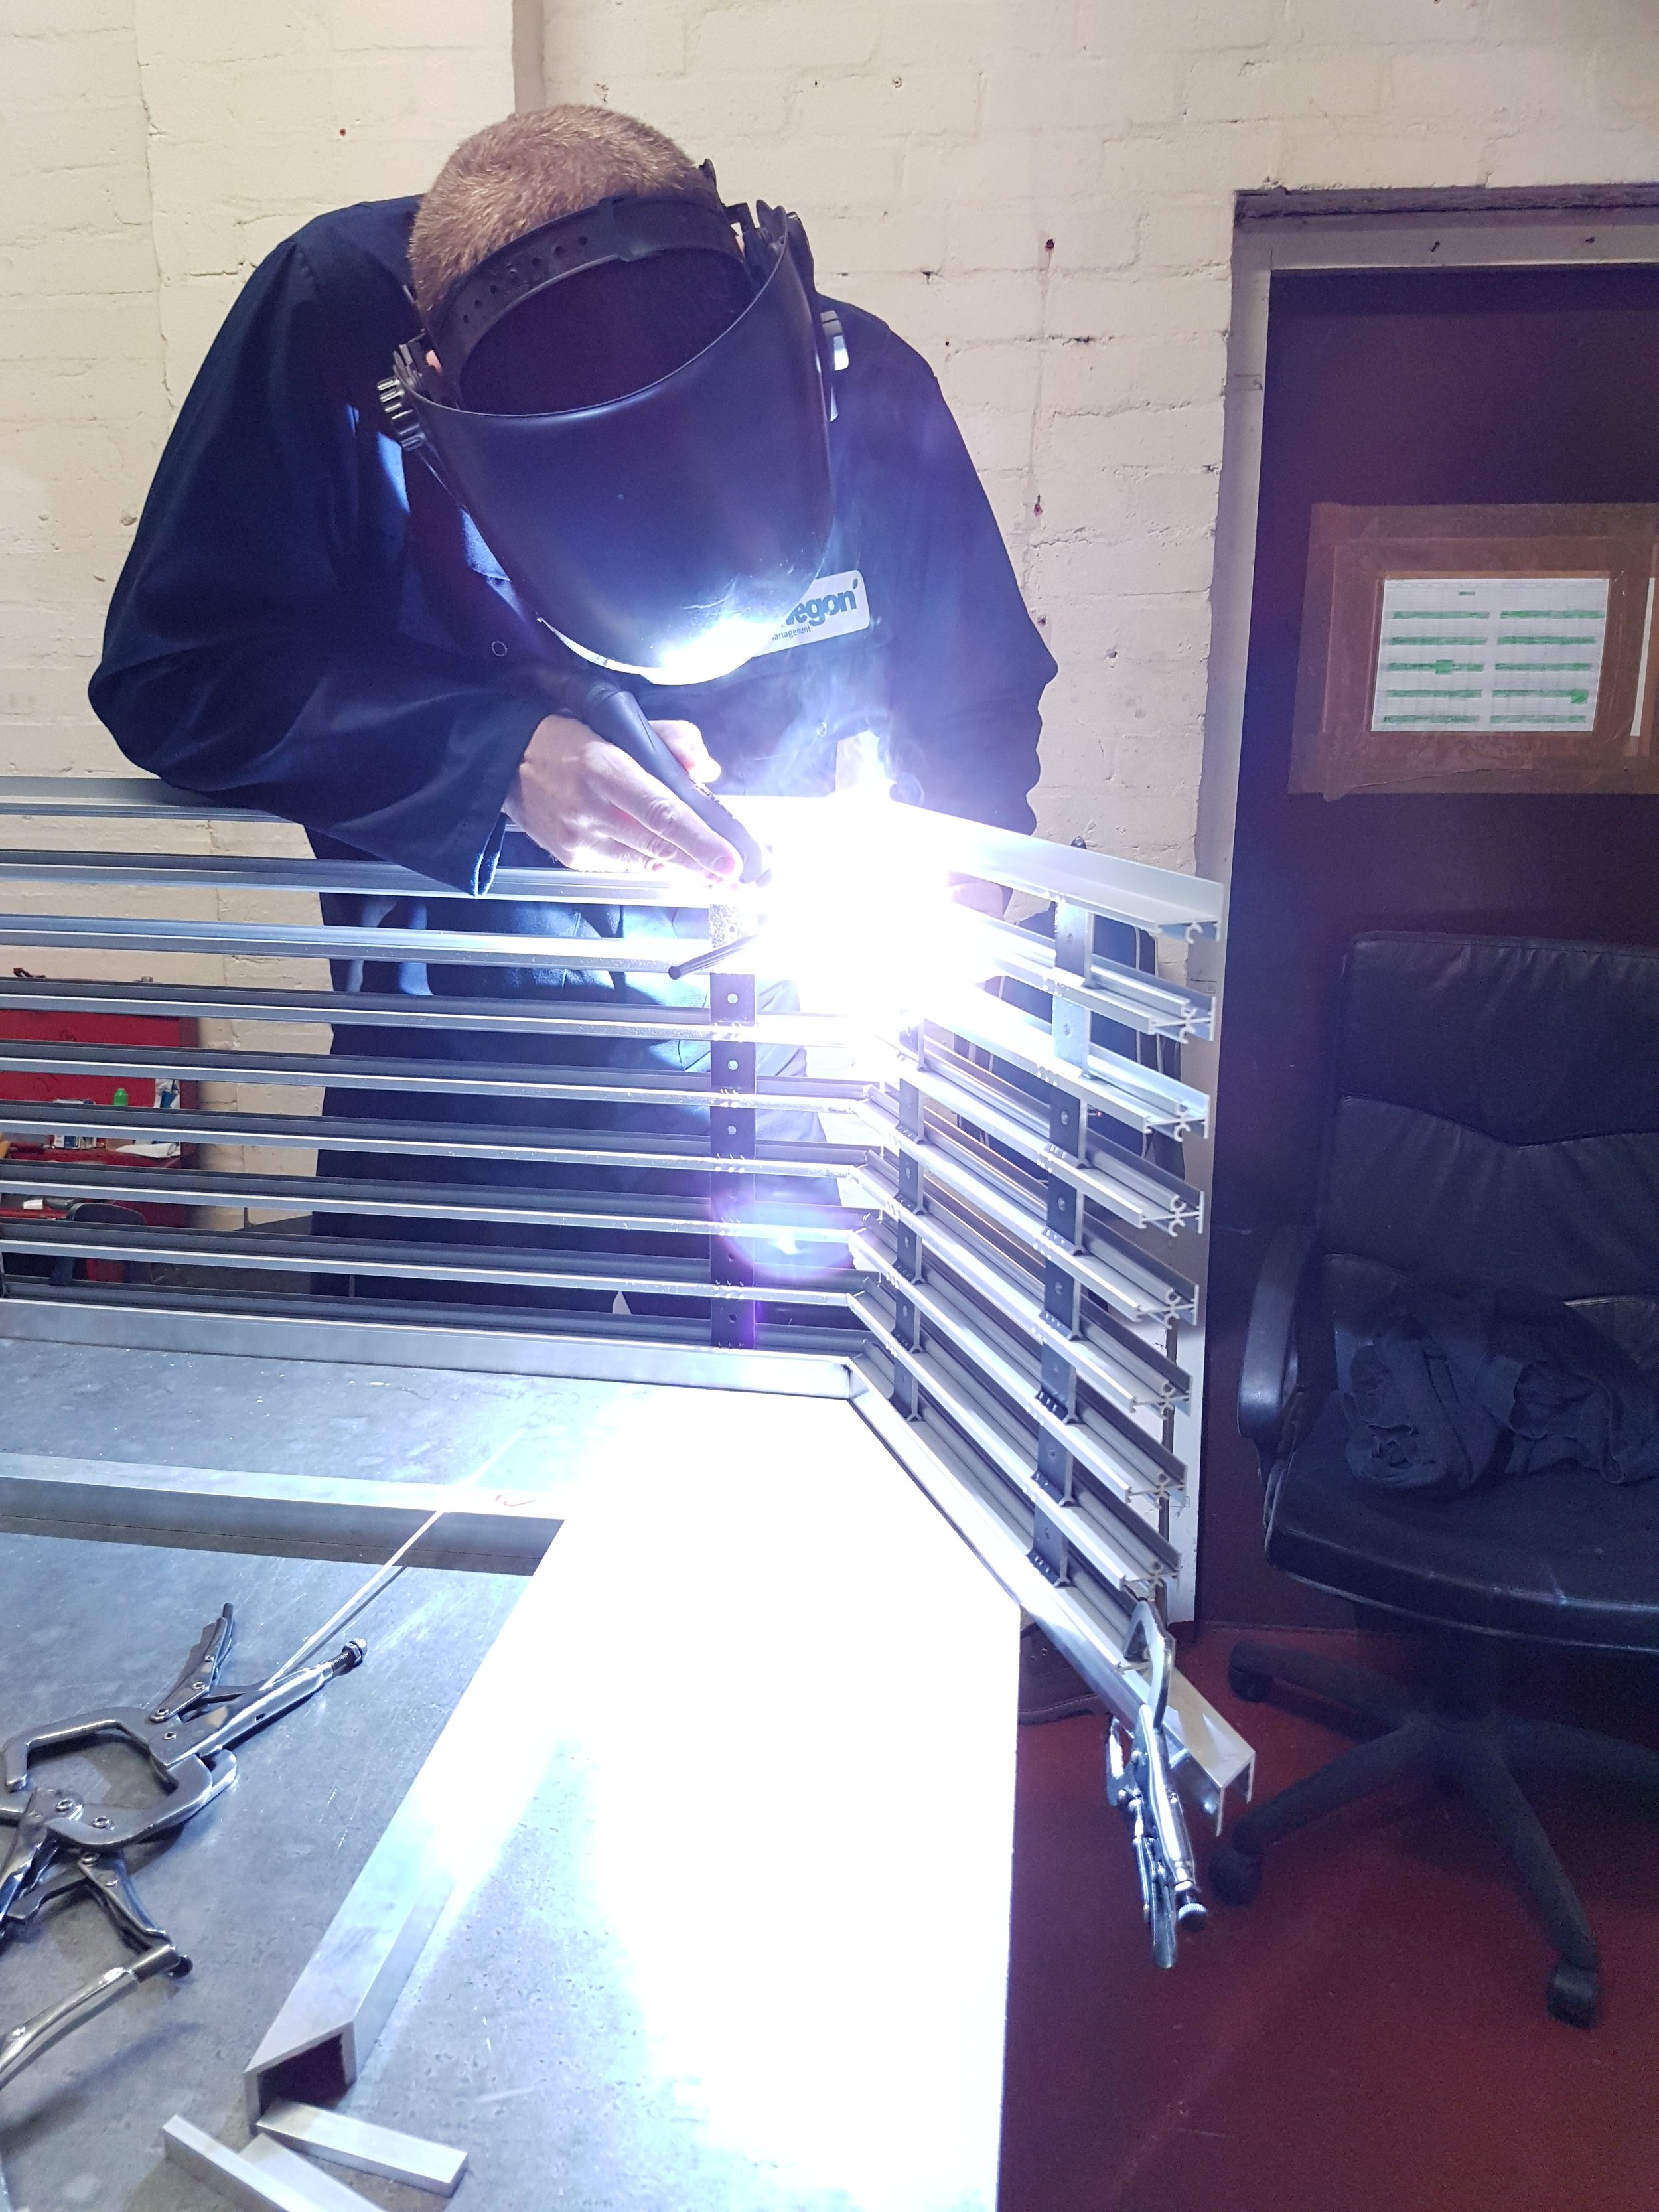 The bespoke linear slot diffusers getting welded together at the Air Diffusion manufacturing site in Bridgnorth.